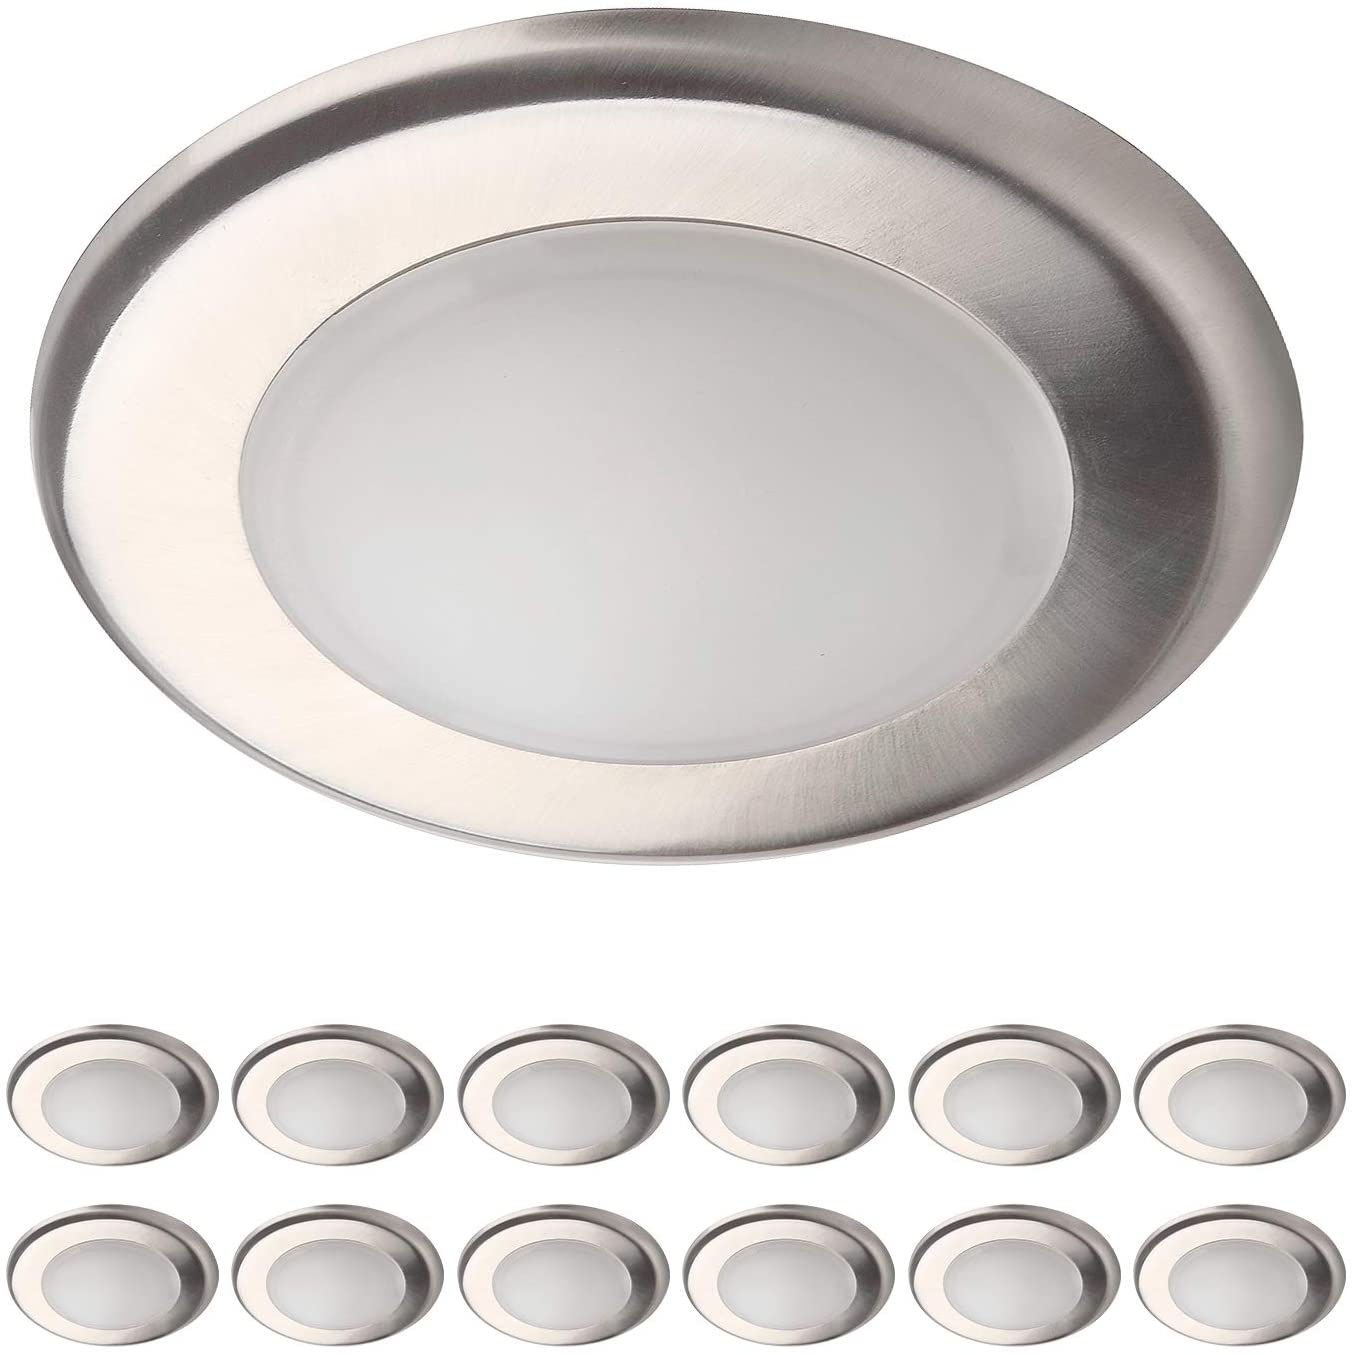 OSTWIN 12 Pack 4 Inch LED Disk Light-Dimmable Low Profile Ceiling Light-Brushed Nickel Finish Flush Mount Fixture-10W(65W Eq.)-700 Lm-5000K-J-box or Recessed Can-ETL&Energy Star